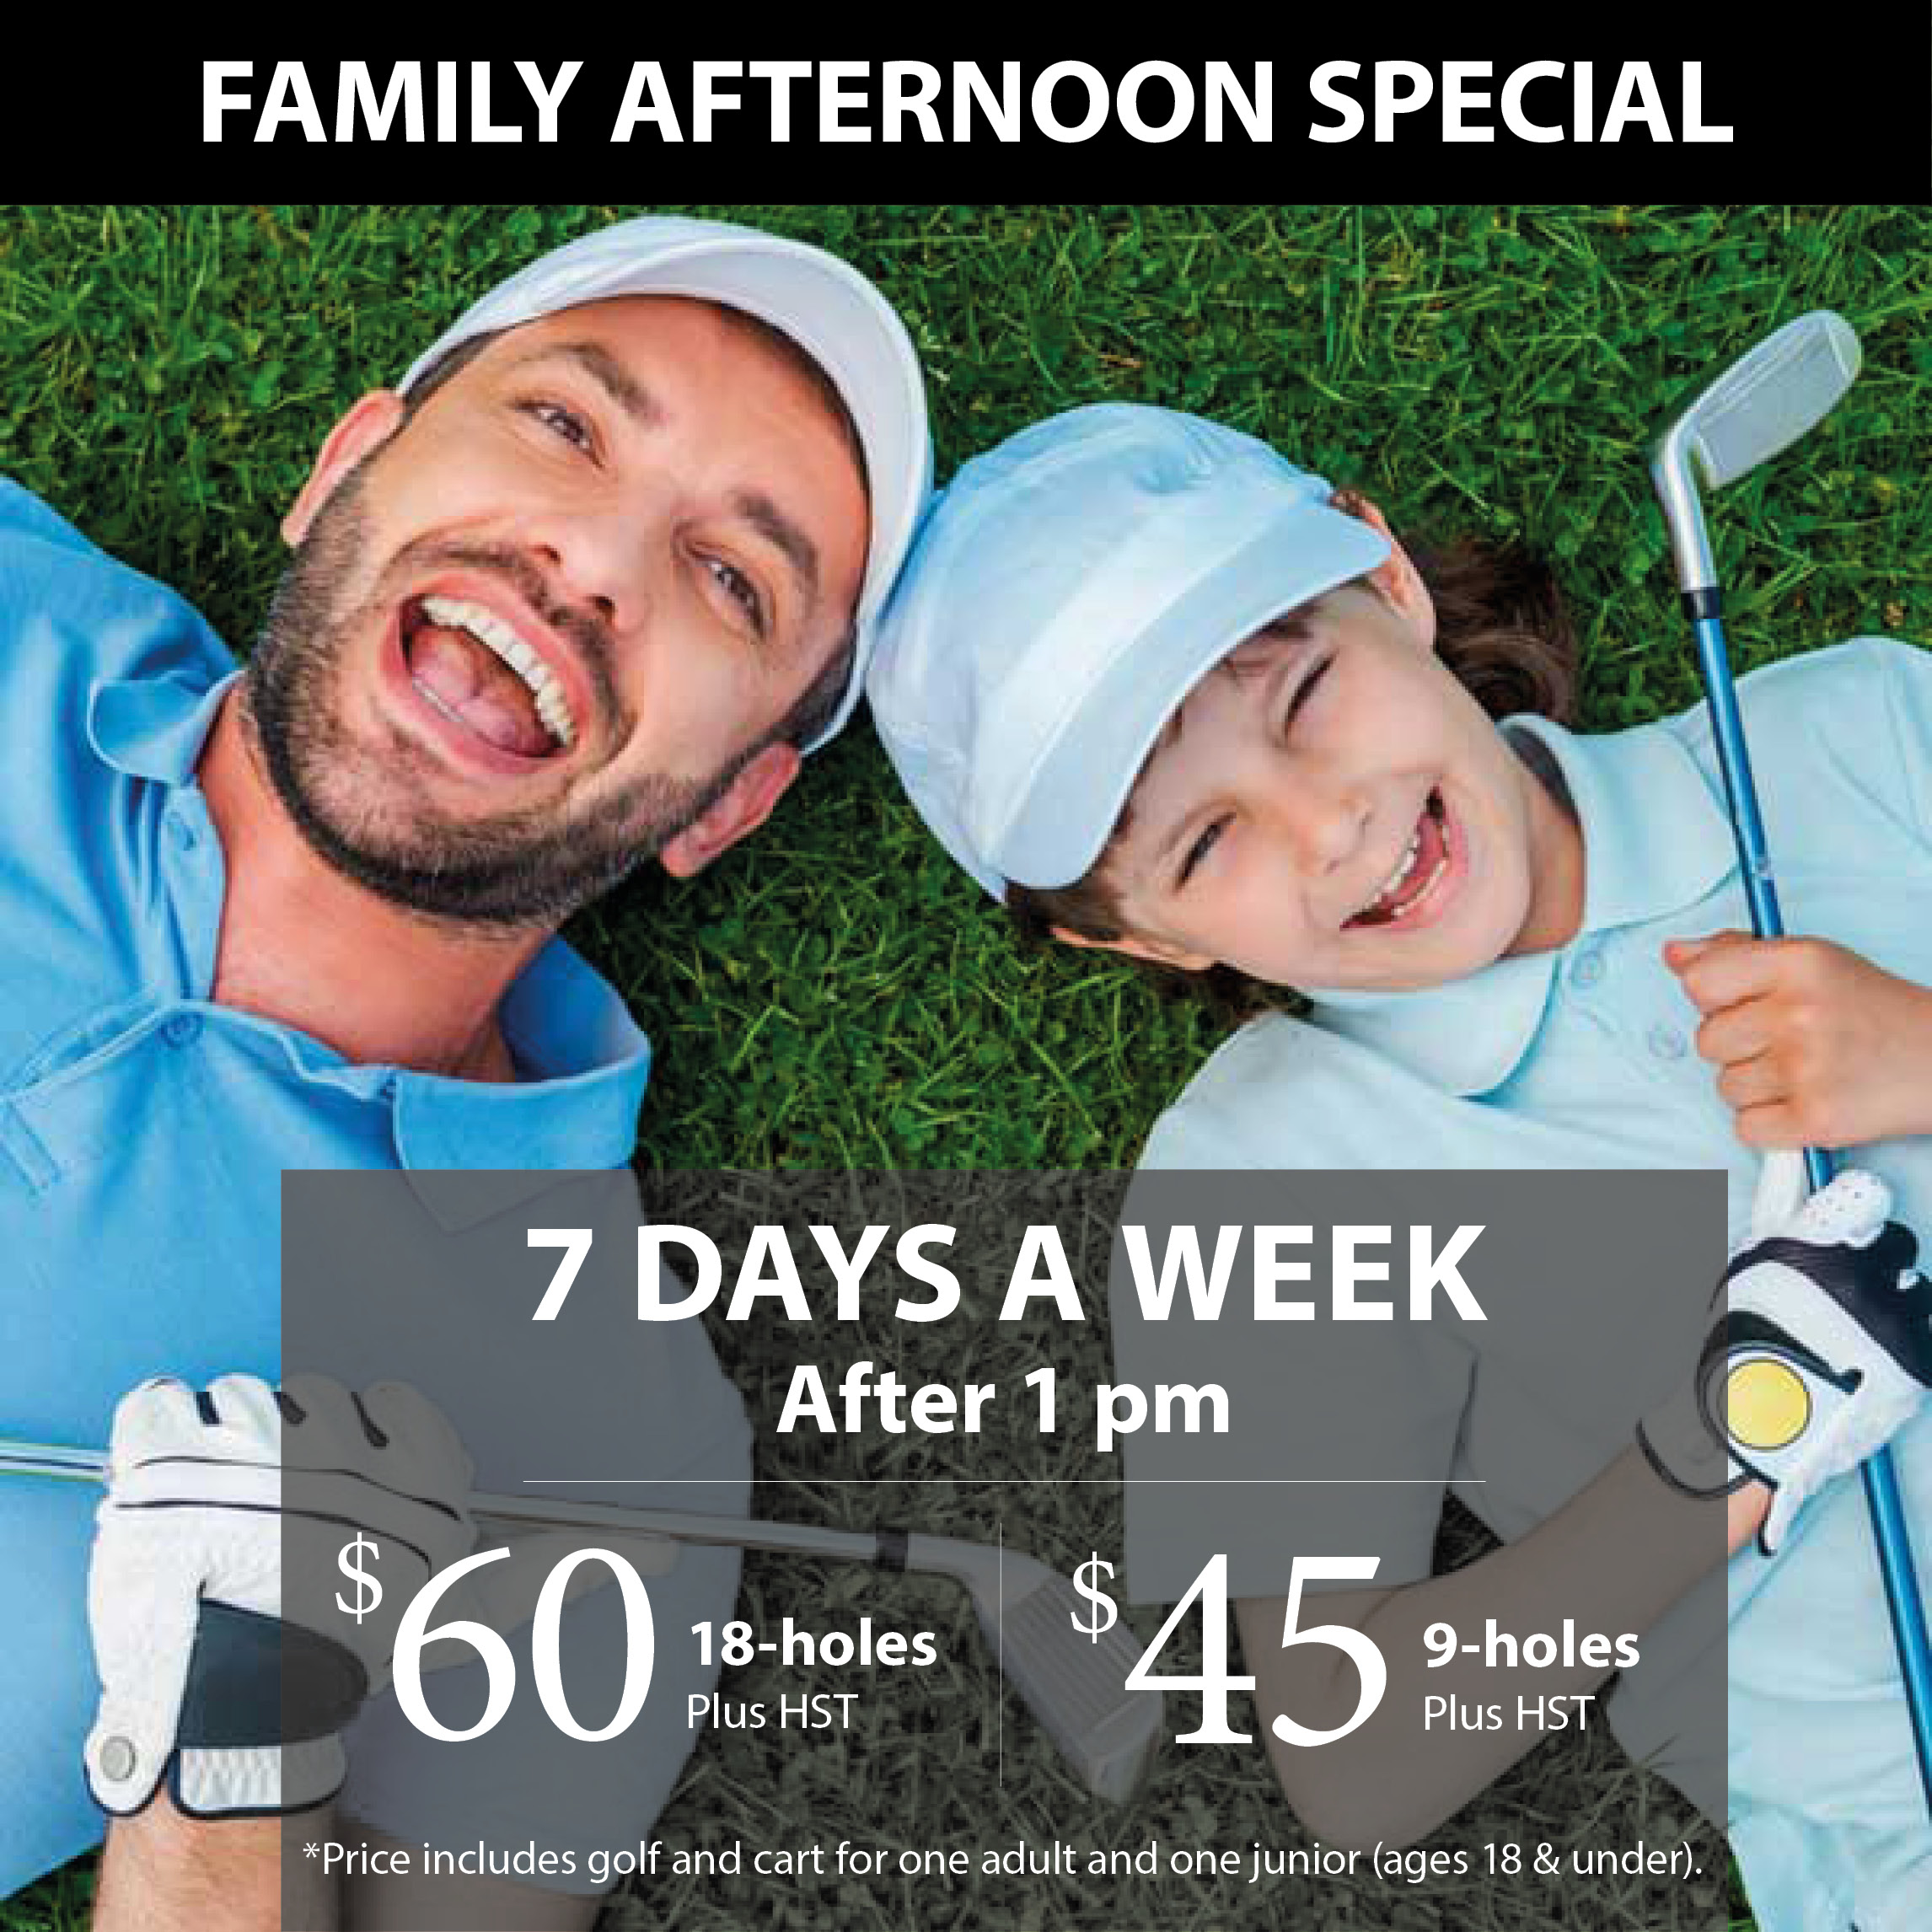 1 Adult & 1 Junior golfer! Save on golf, 7 days a week after 1:00pm.